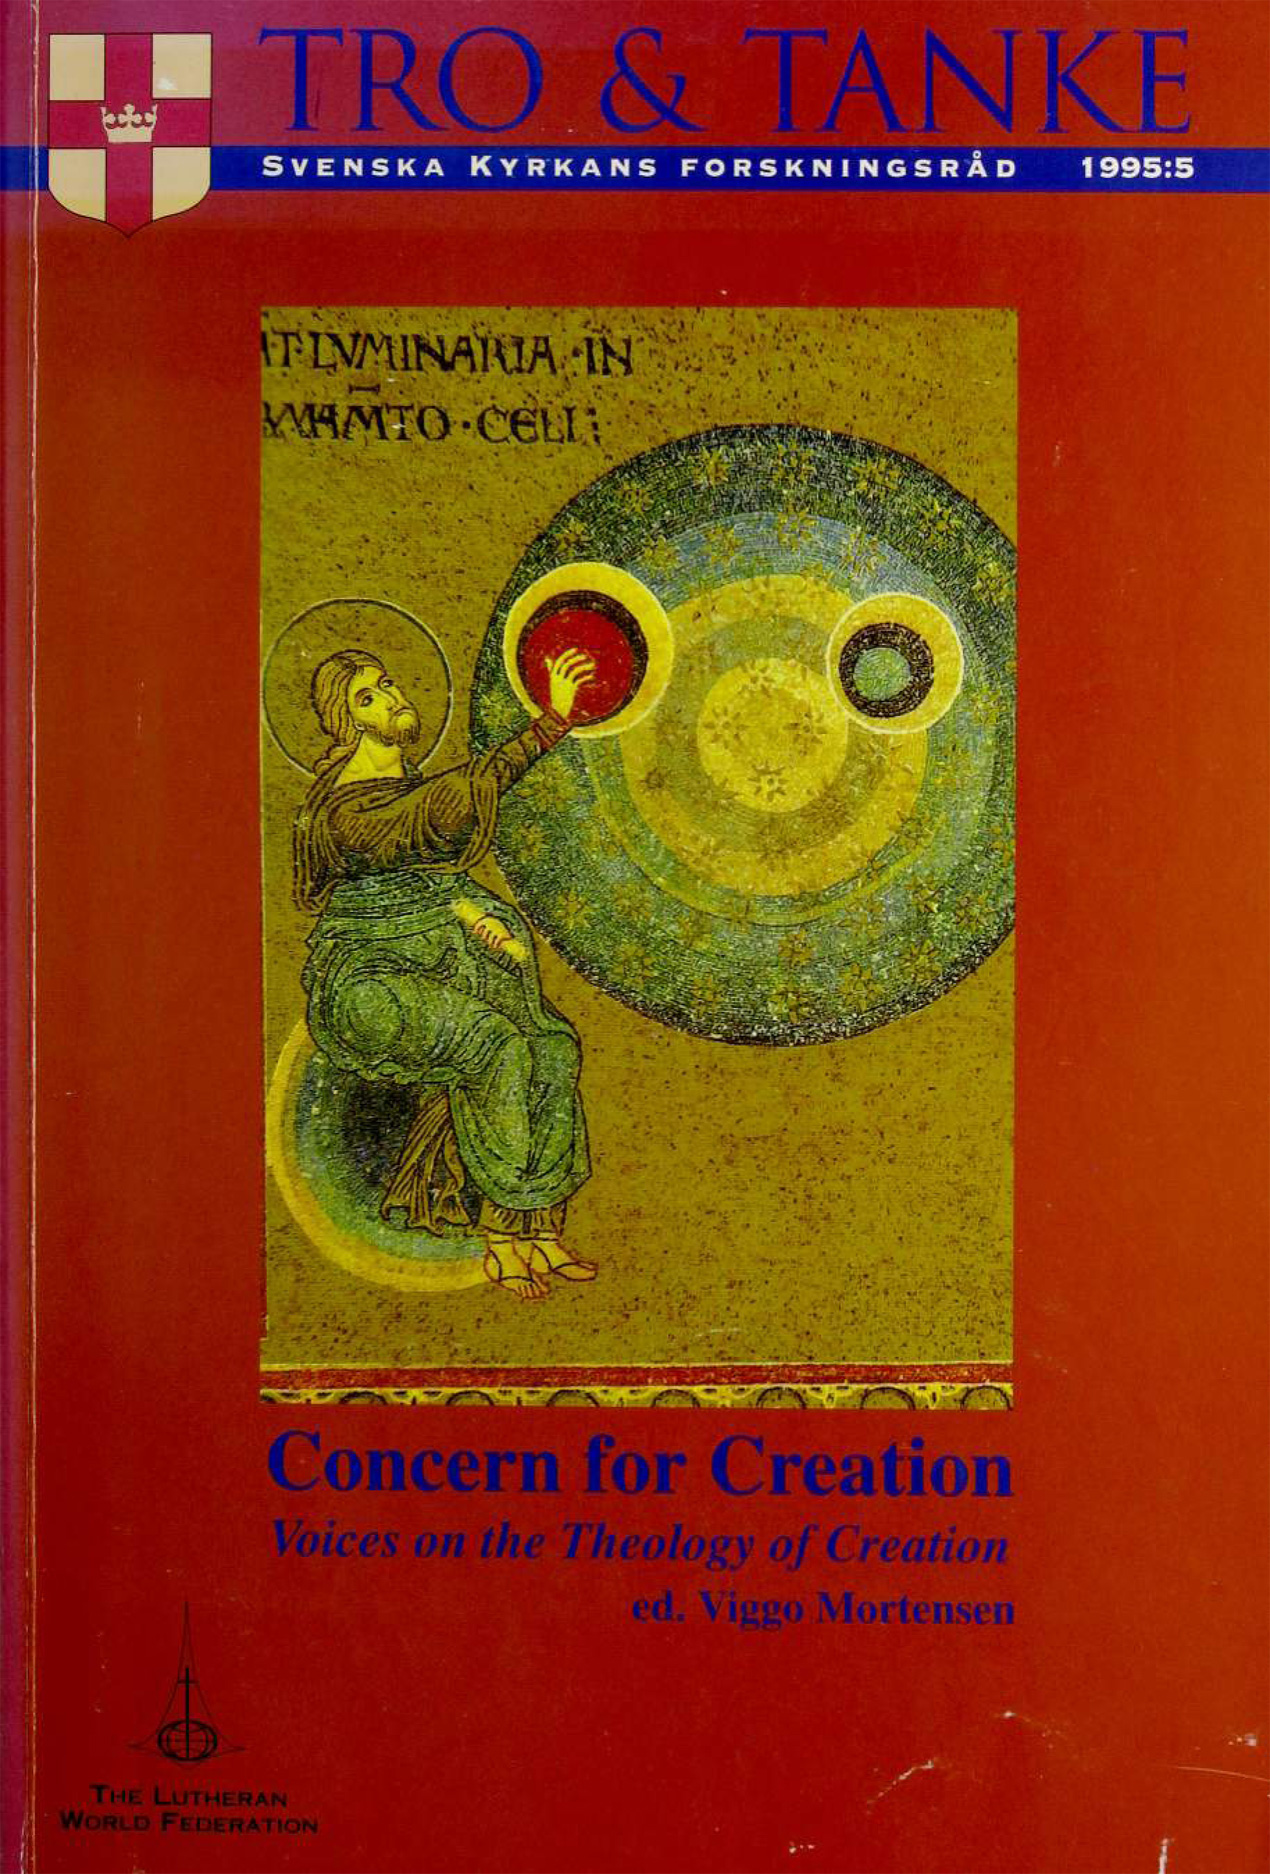 Concern for Creation. Voices on the Theology of Creation